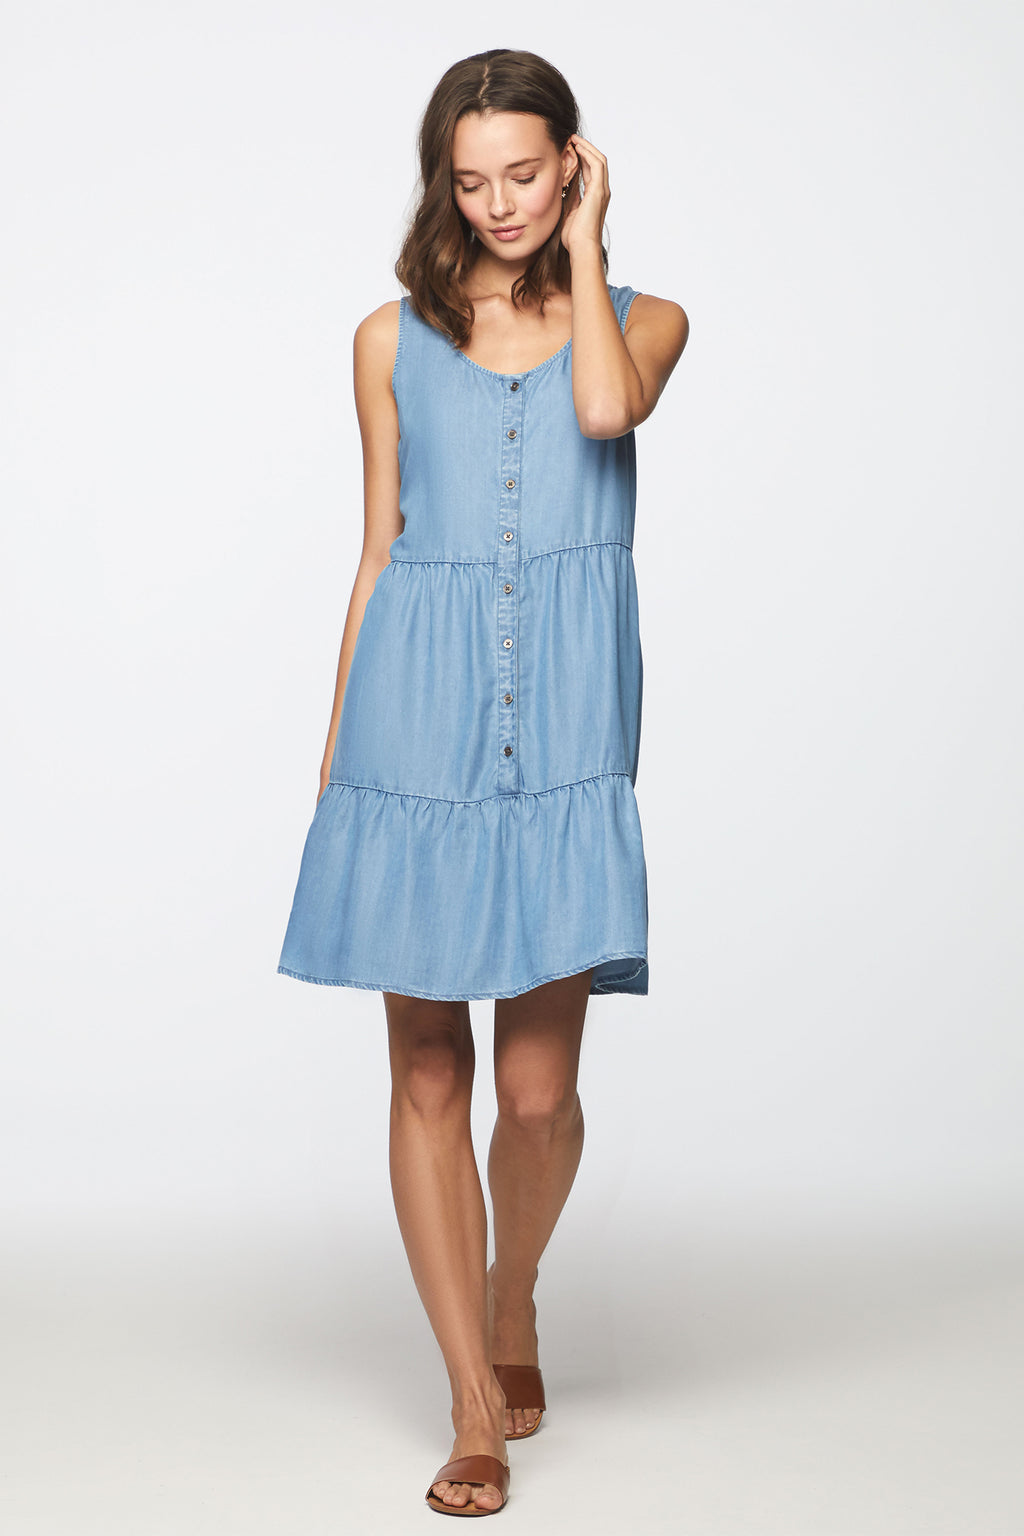 KIRA DRESS – MEDIUM WASH